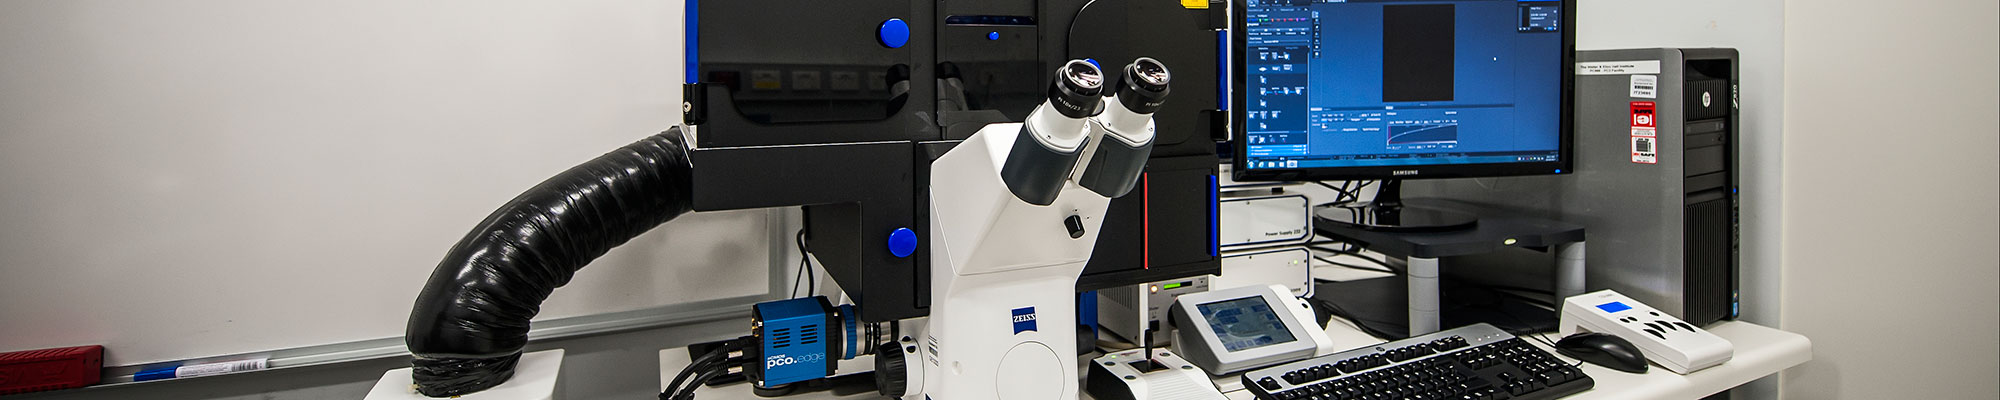 Zeiss Axio Observer (Airlock) microscope